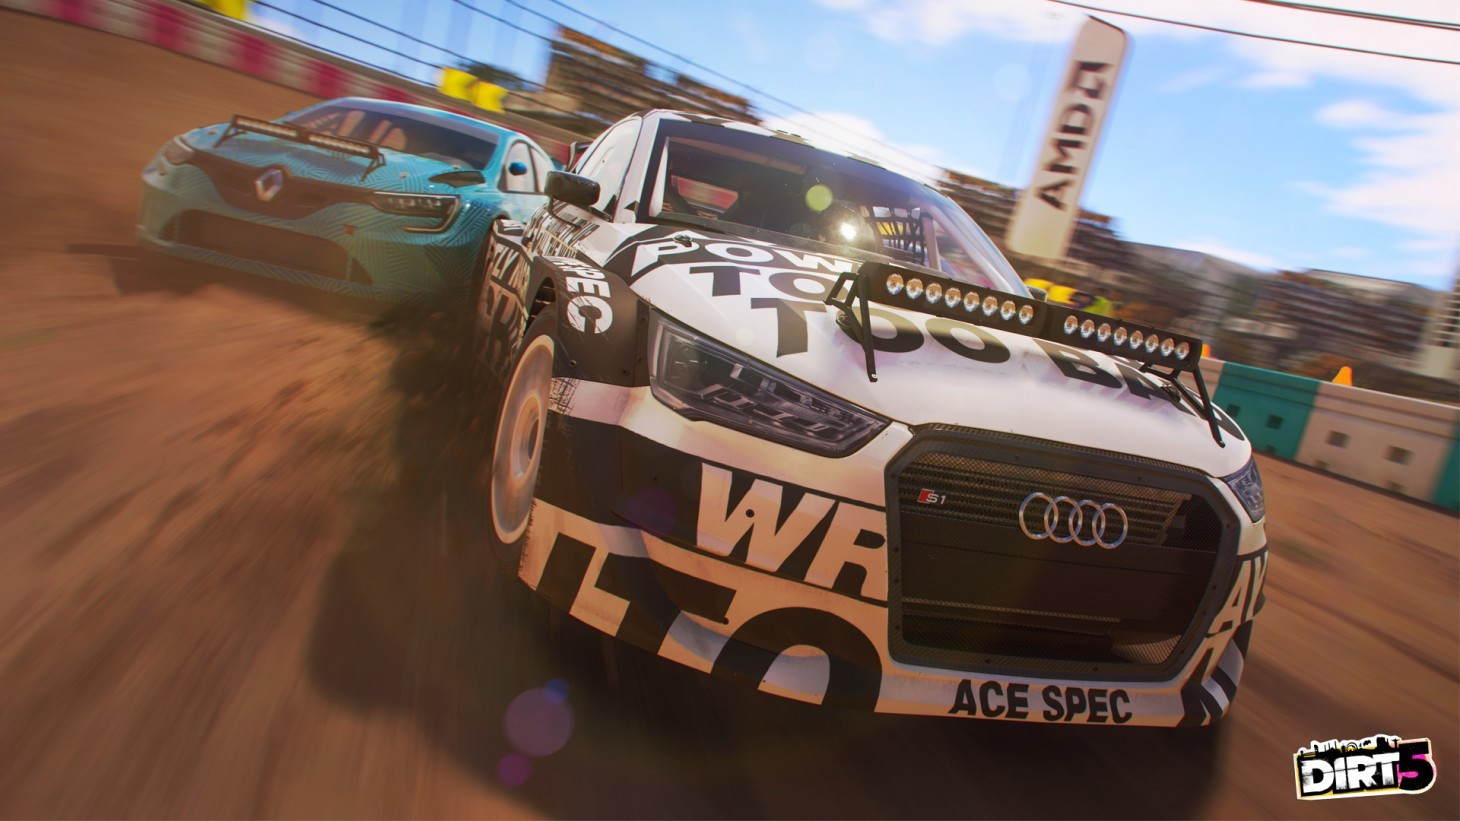 Find Out How to Get Rewards in Dirt 5